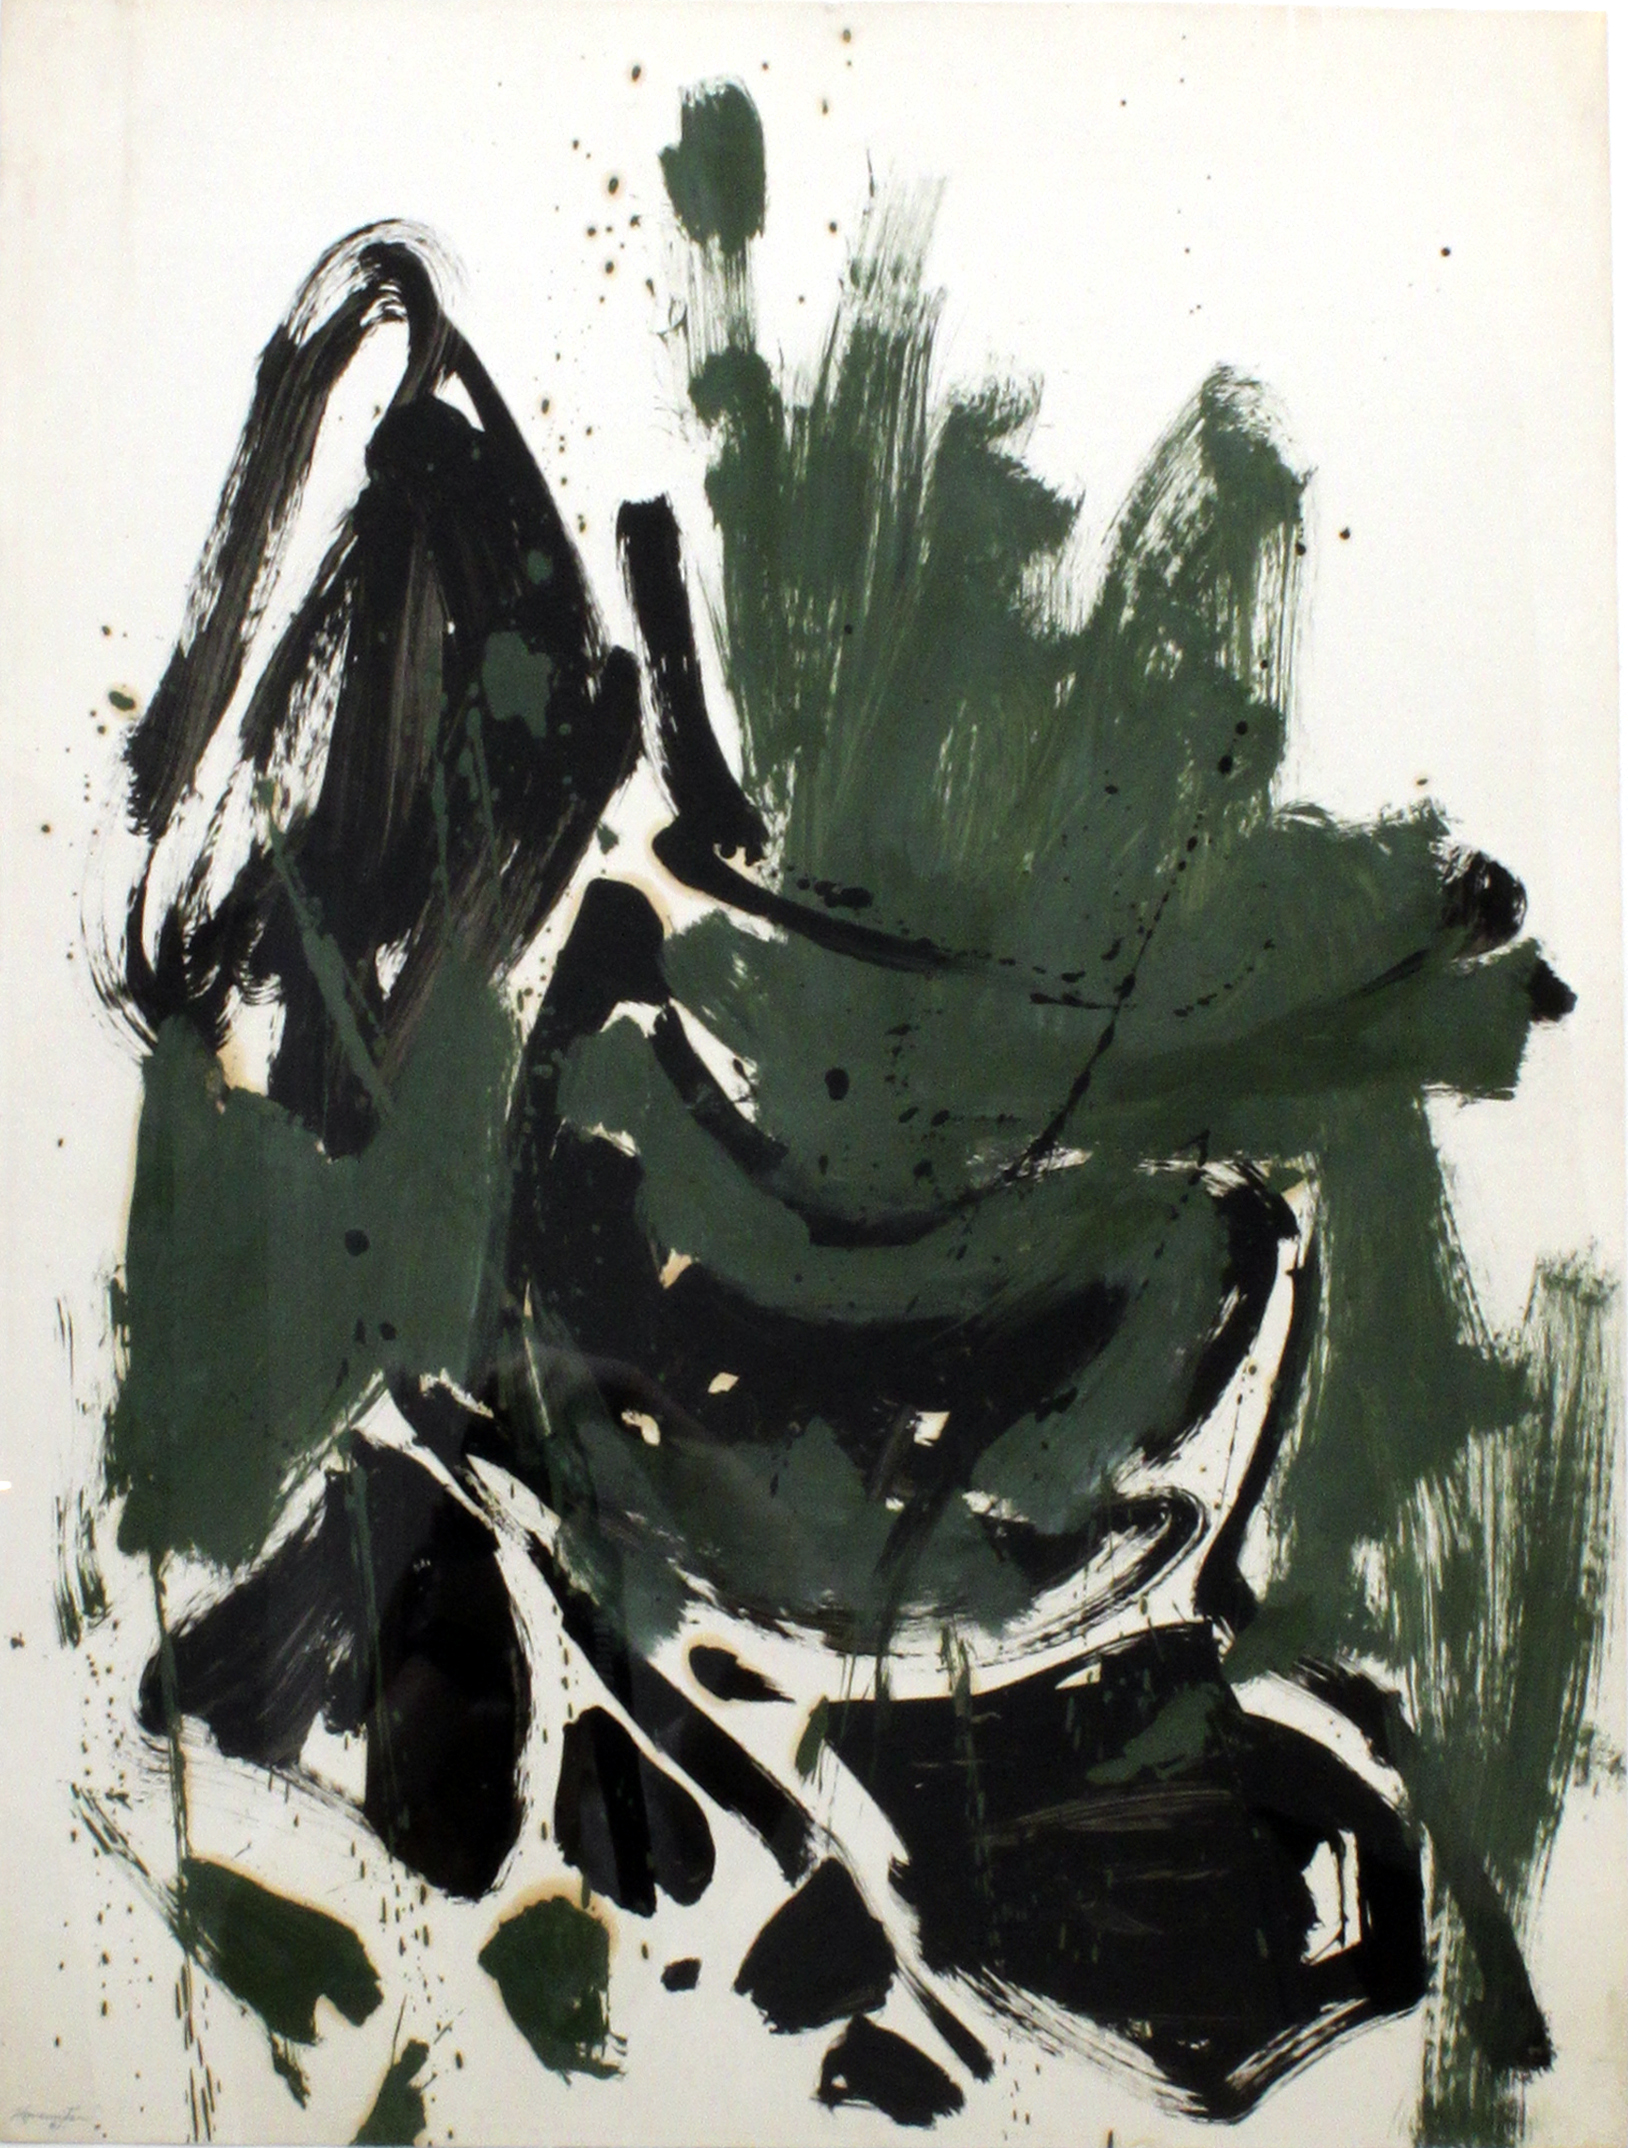 Abstraction (Green, Black, Brown)   1961  oil on canvas  28.25 x 22.5 inches, 71.8 x 57.1 centimeters